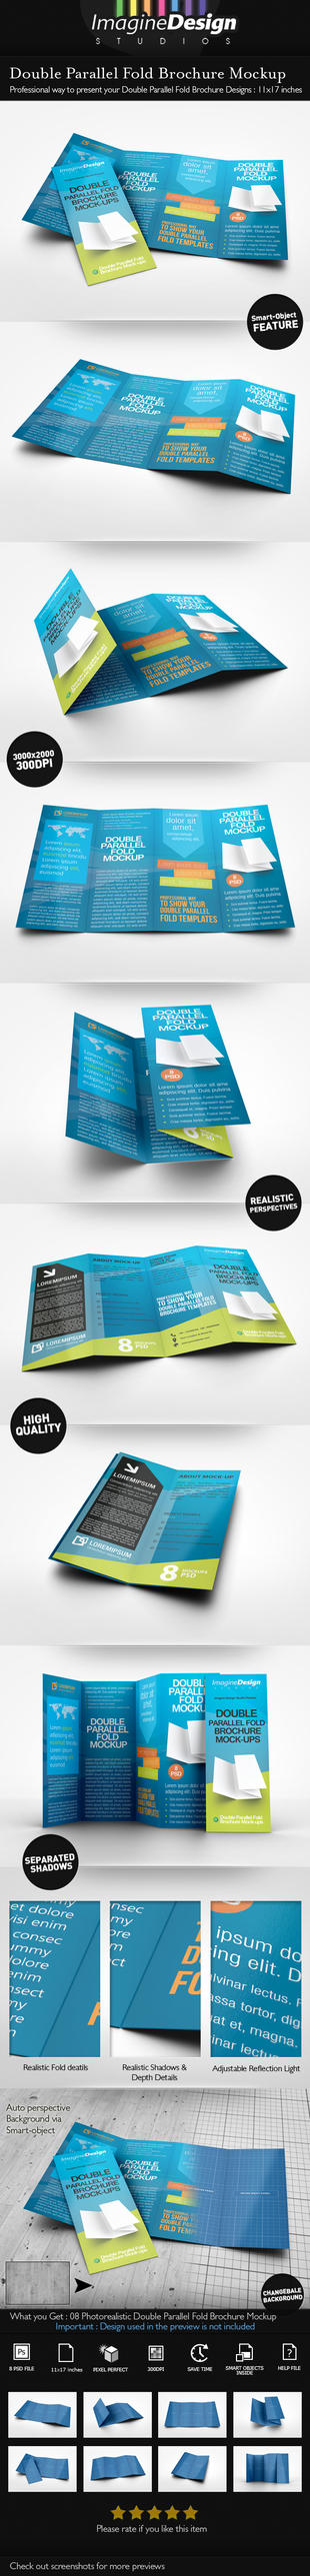 Double Parallel Fold Brochure Mockup by idesignstudio